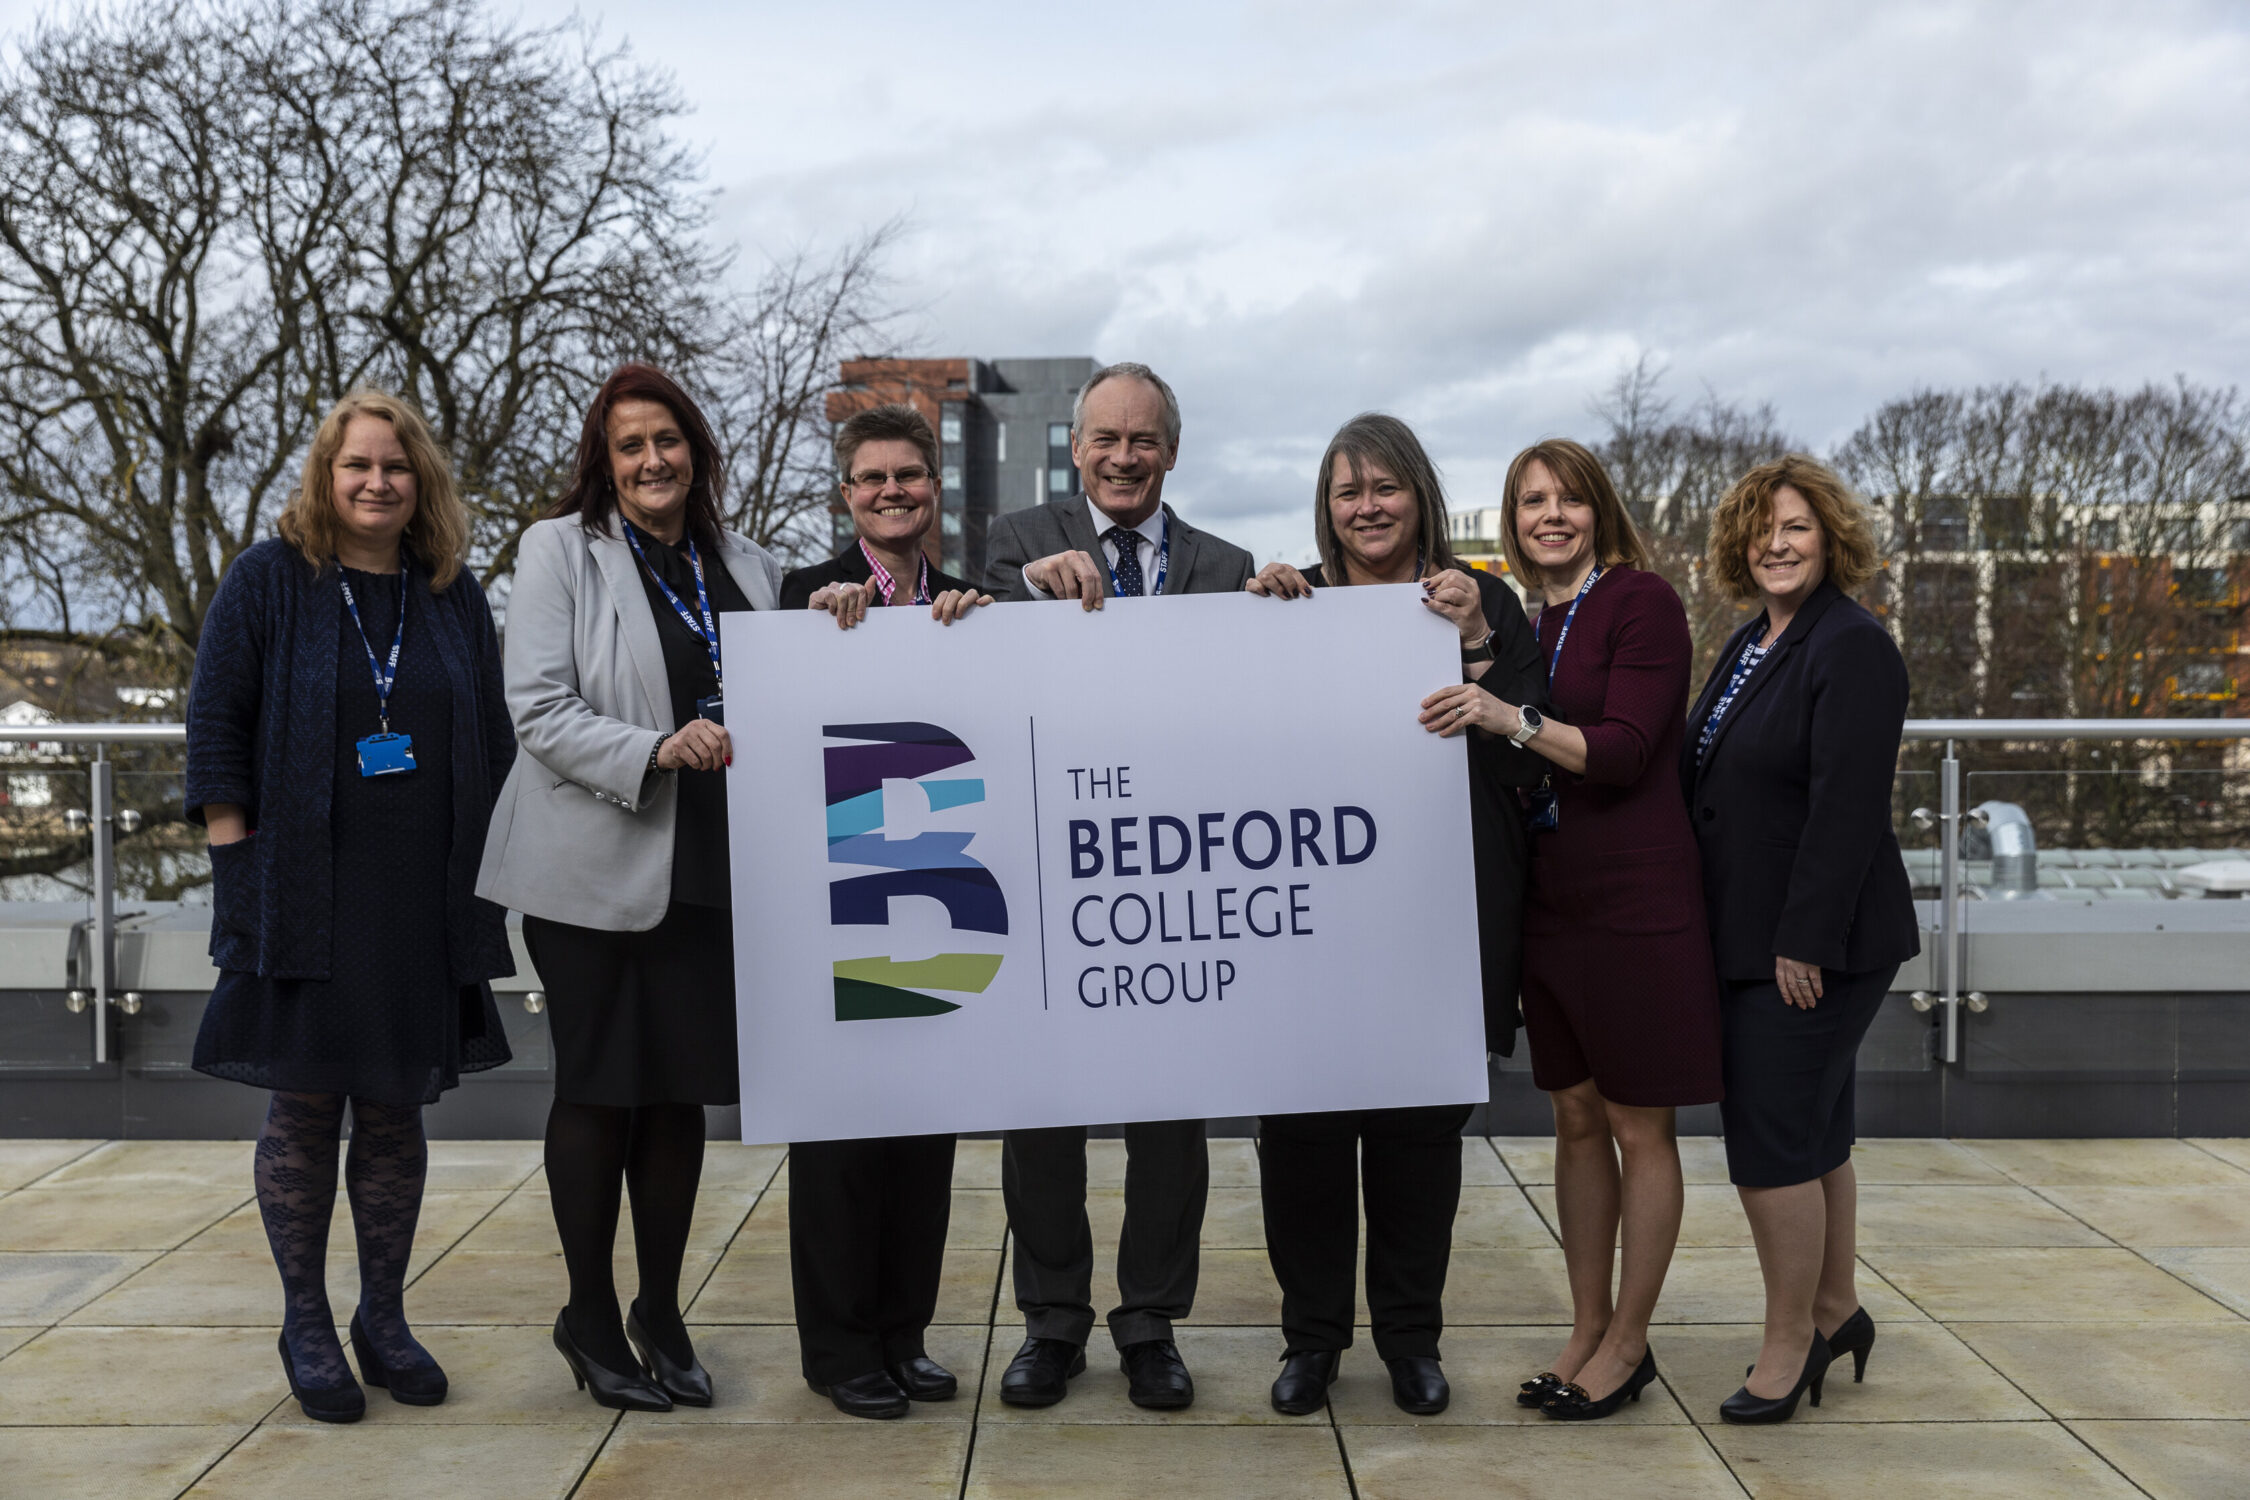 The Bedford College Group Executive staff members